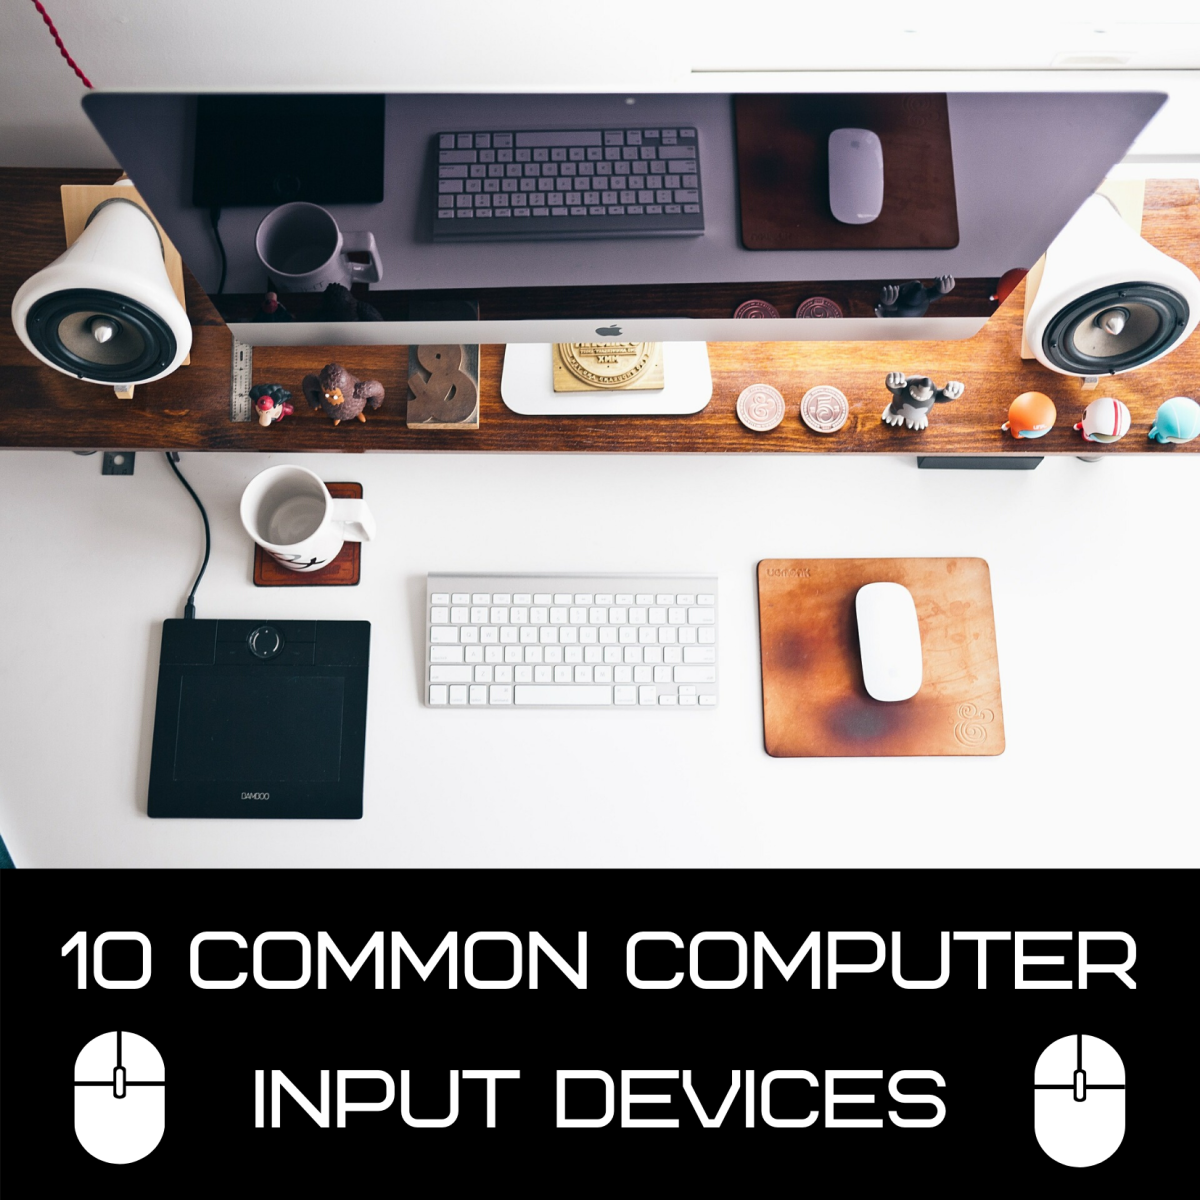 This article covers 10 of the most common input devices used with home and office computers.